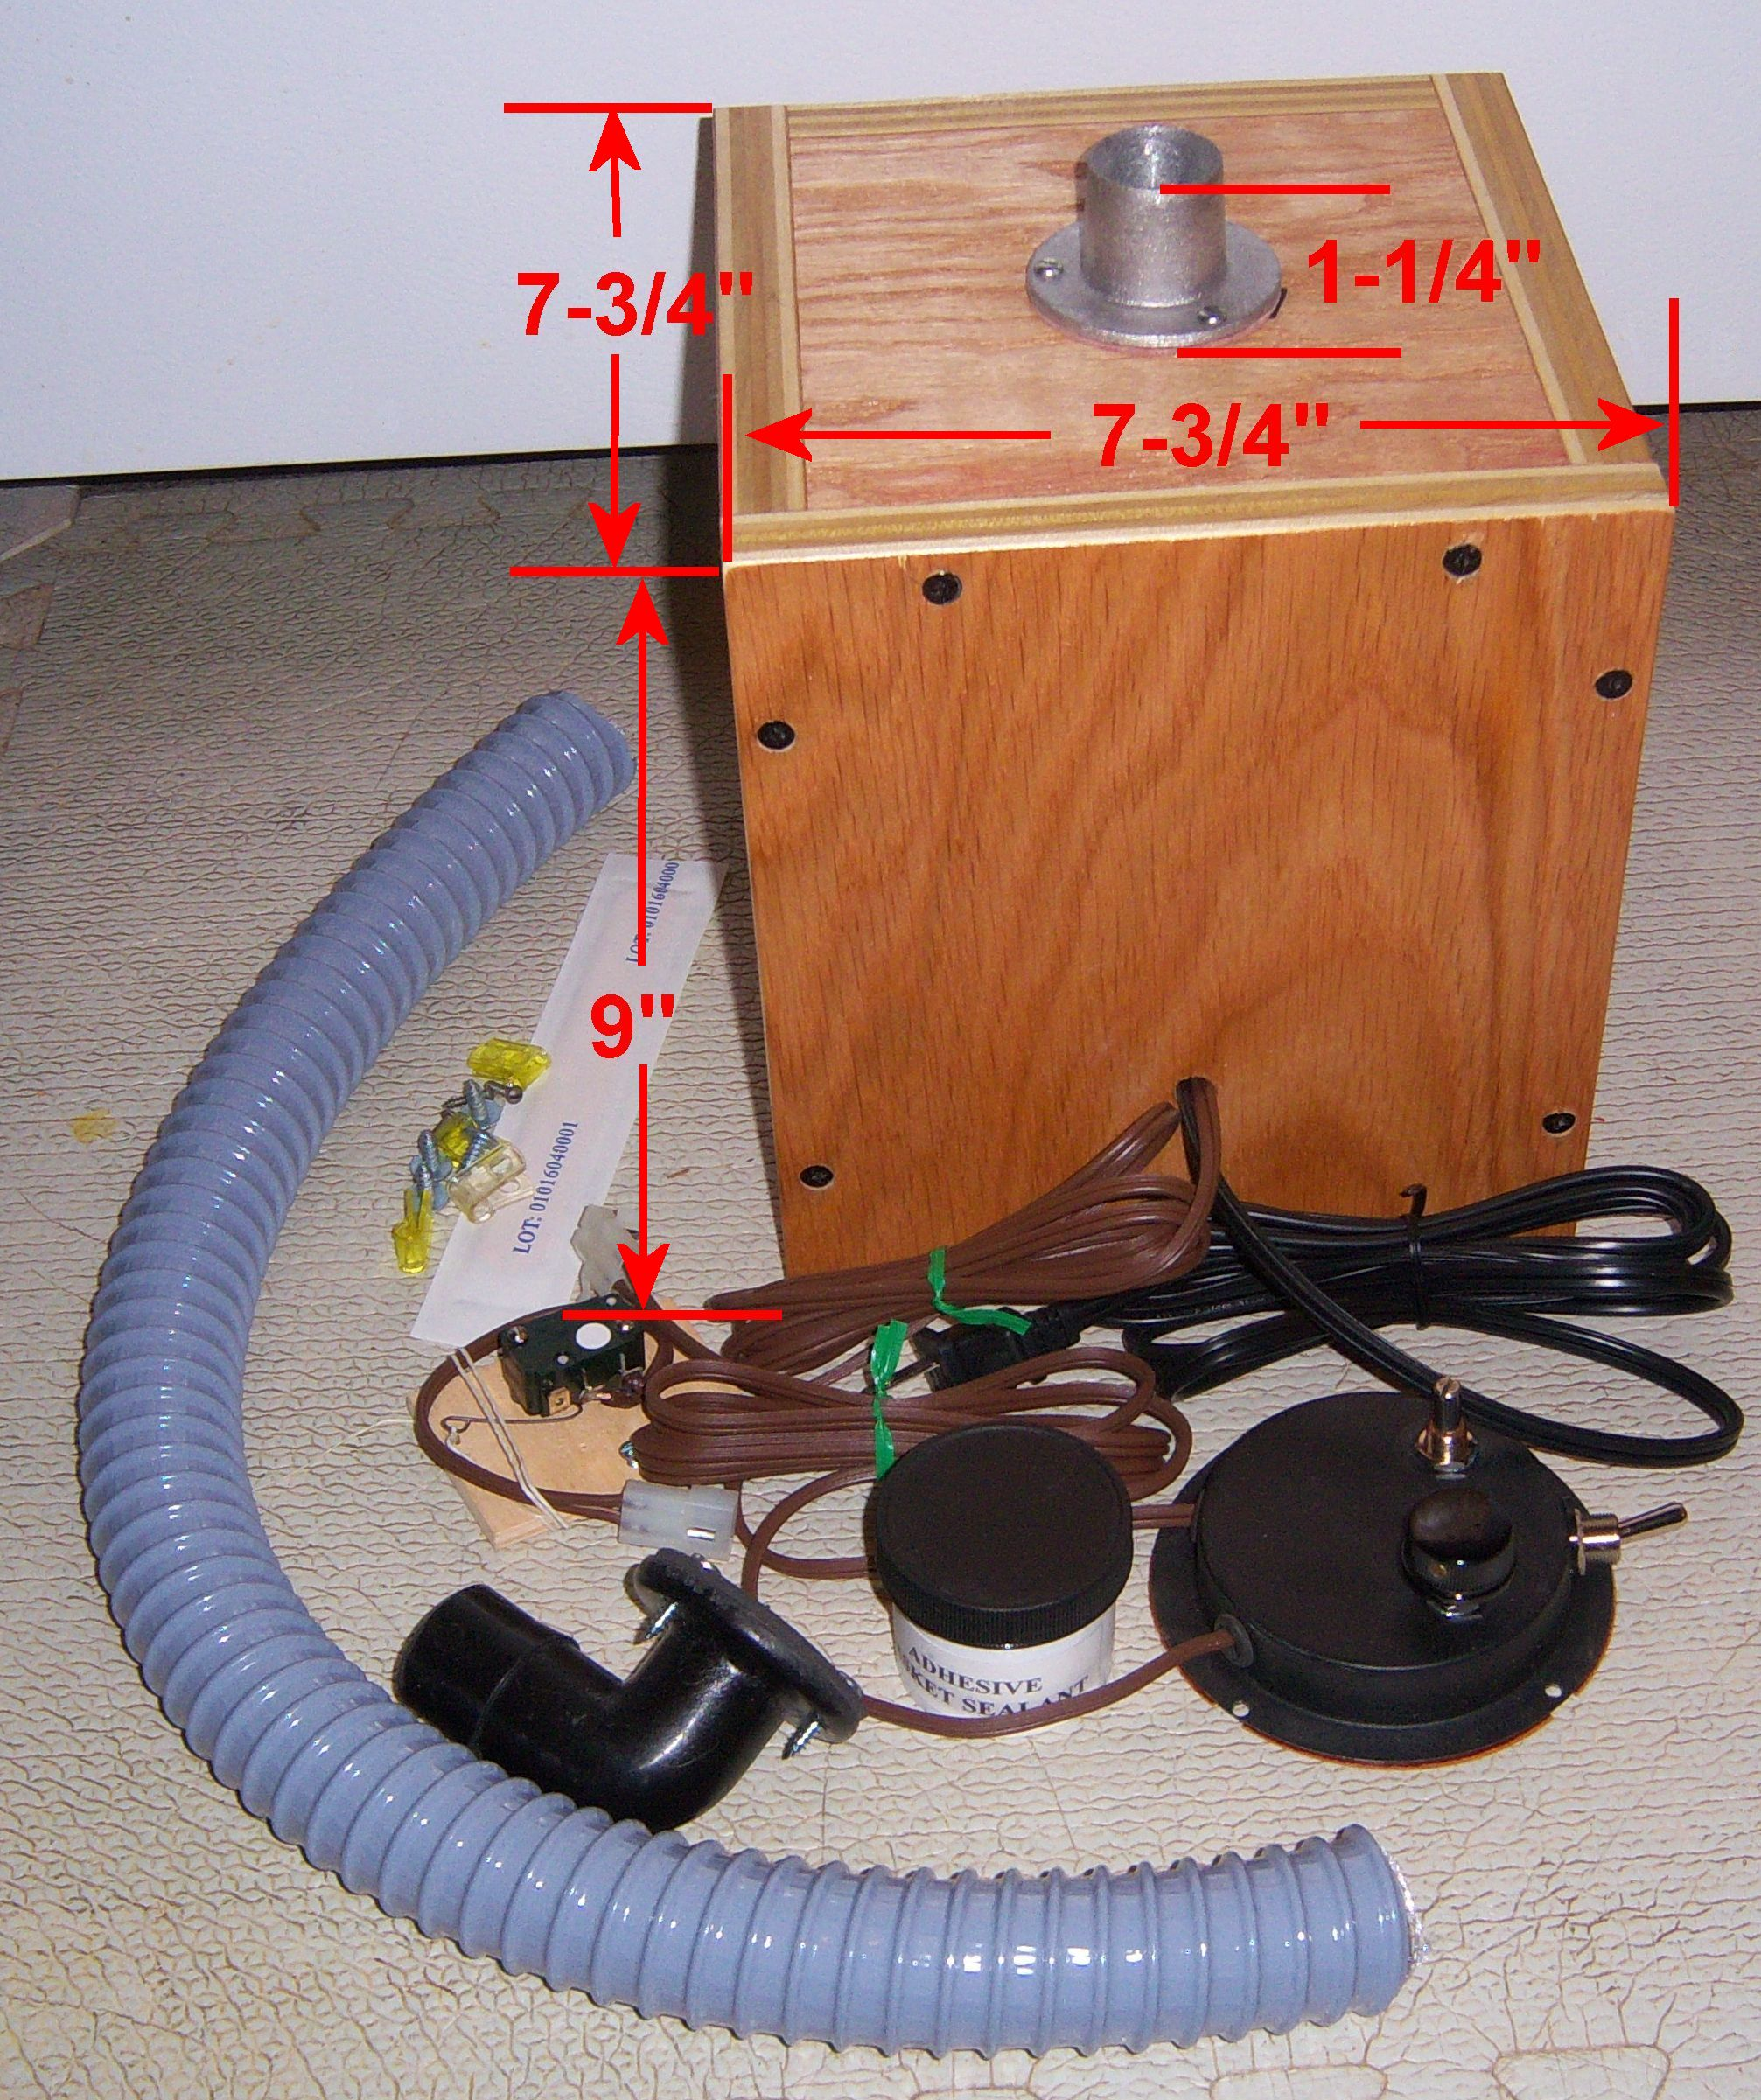 Electric Vacuum Pump And Deluxe Automation Kits For Player Pianos Wiring Diagram Click Larger Image